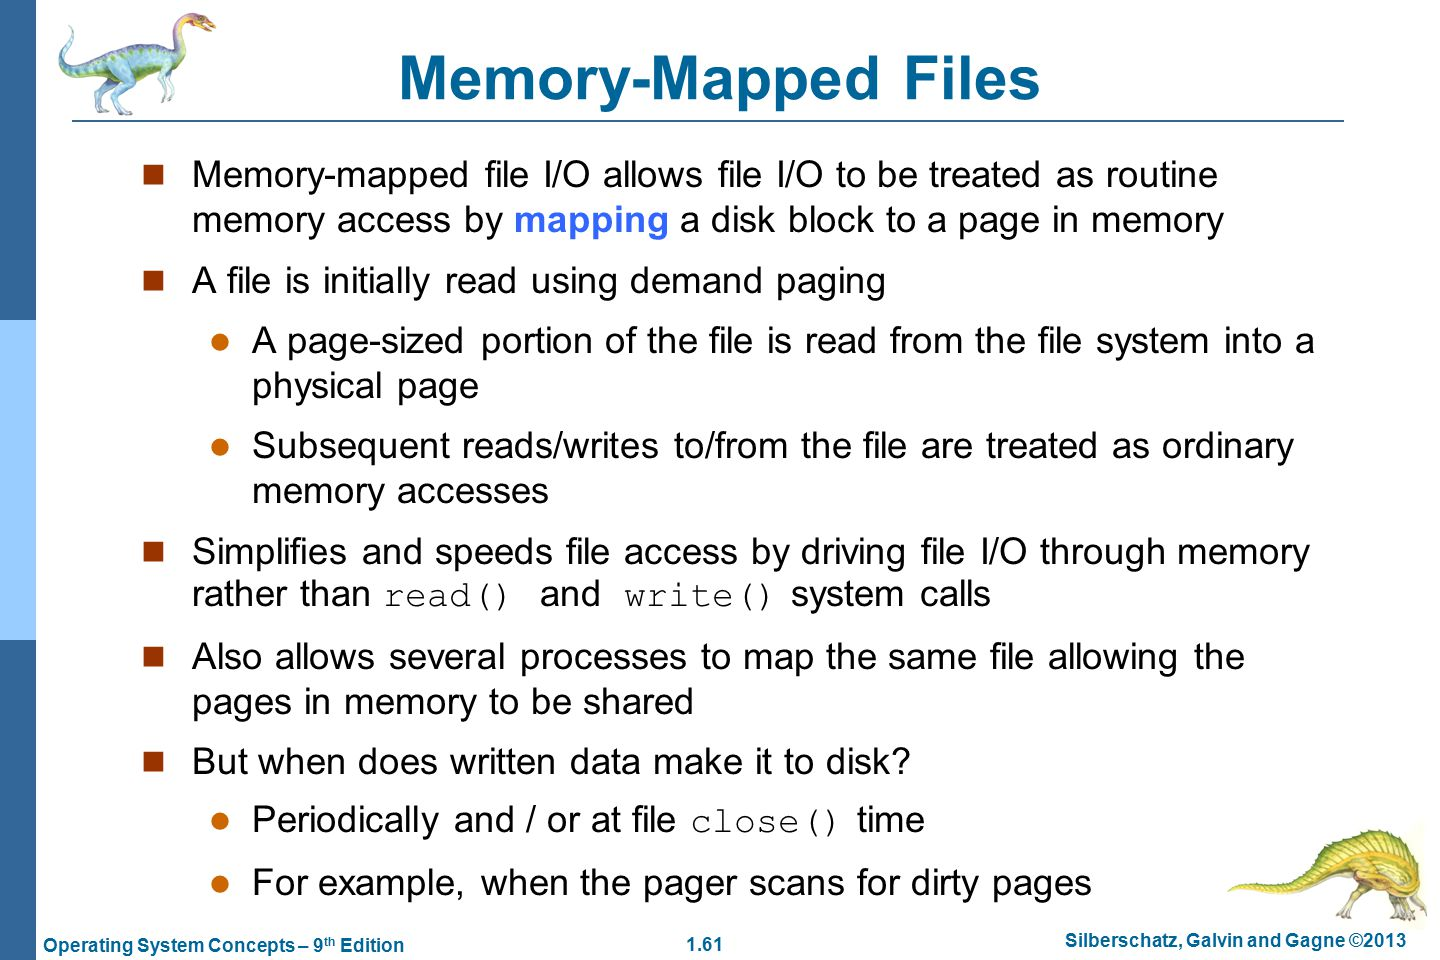 1.61 Silberschatz, Galvin and Gagne ©2013 Operating System Concepts – 9 th Edition Memory-Mapped Files Memory-mapped file I/O allows file I/O to be treated as routine memory access by mapping a disk block to a page in memory A file is initially read using demand paging A page-sized portion of the file is read from the file system into a physical page Subsequent reads/writes to/from the file are treated as ordinary memory accesses Simplifies and speeds file access by driving file I/O through memory rather than read() and write() system calls Also allows several processes to map the same file allowing the pages in memory to be shared But when does written data make it to disk.